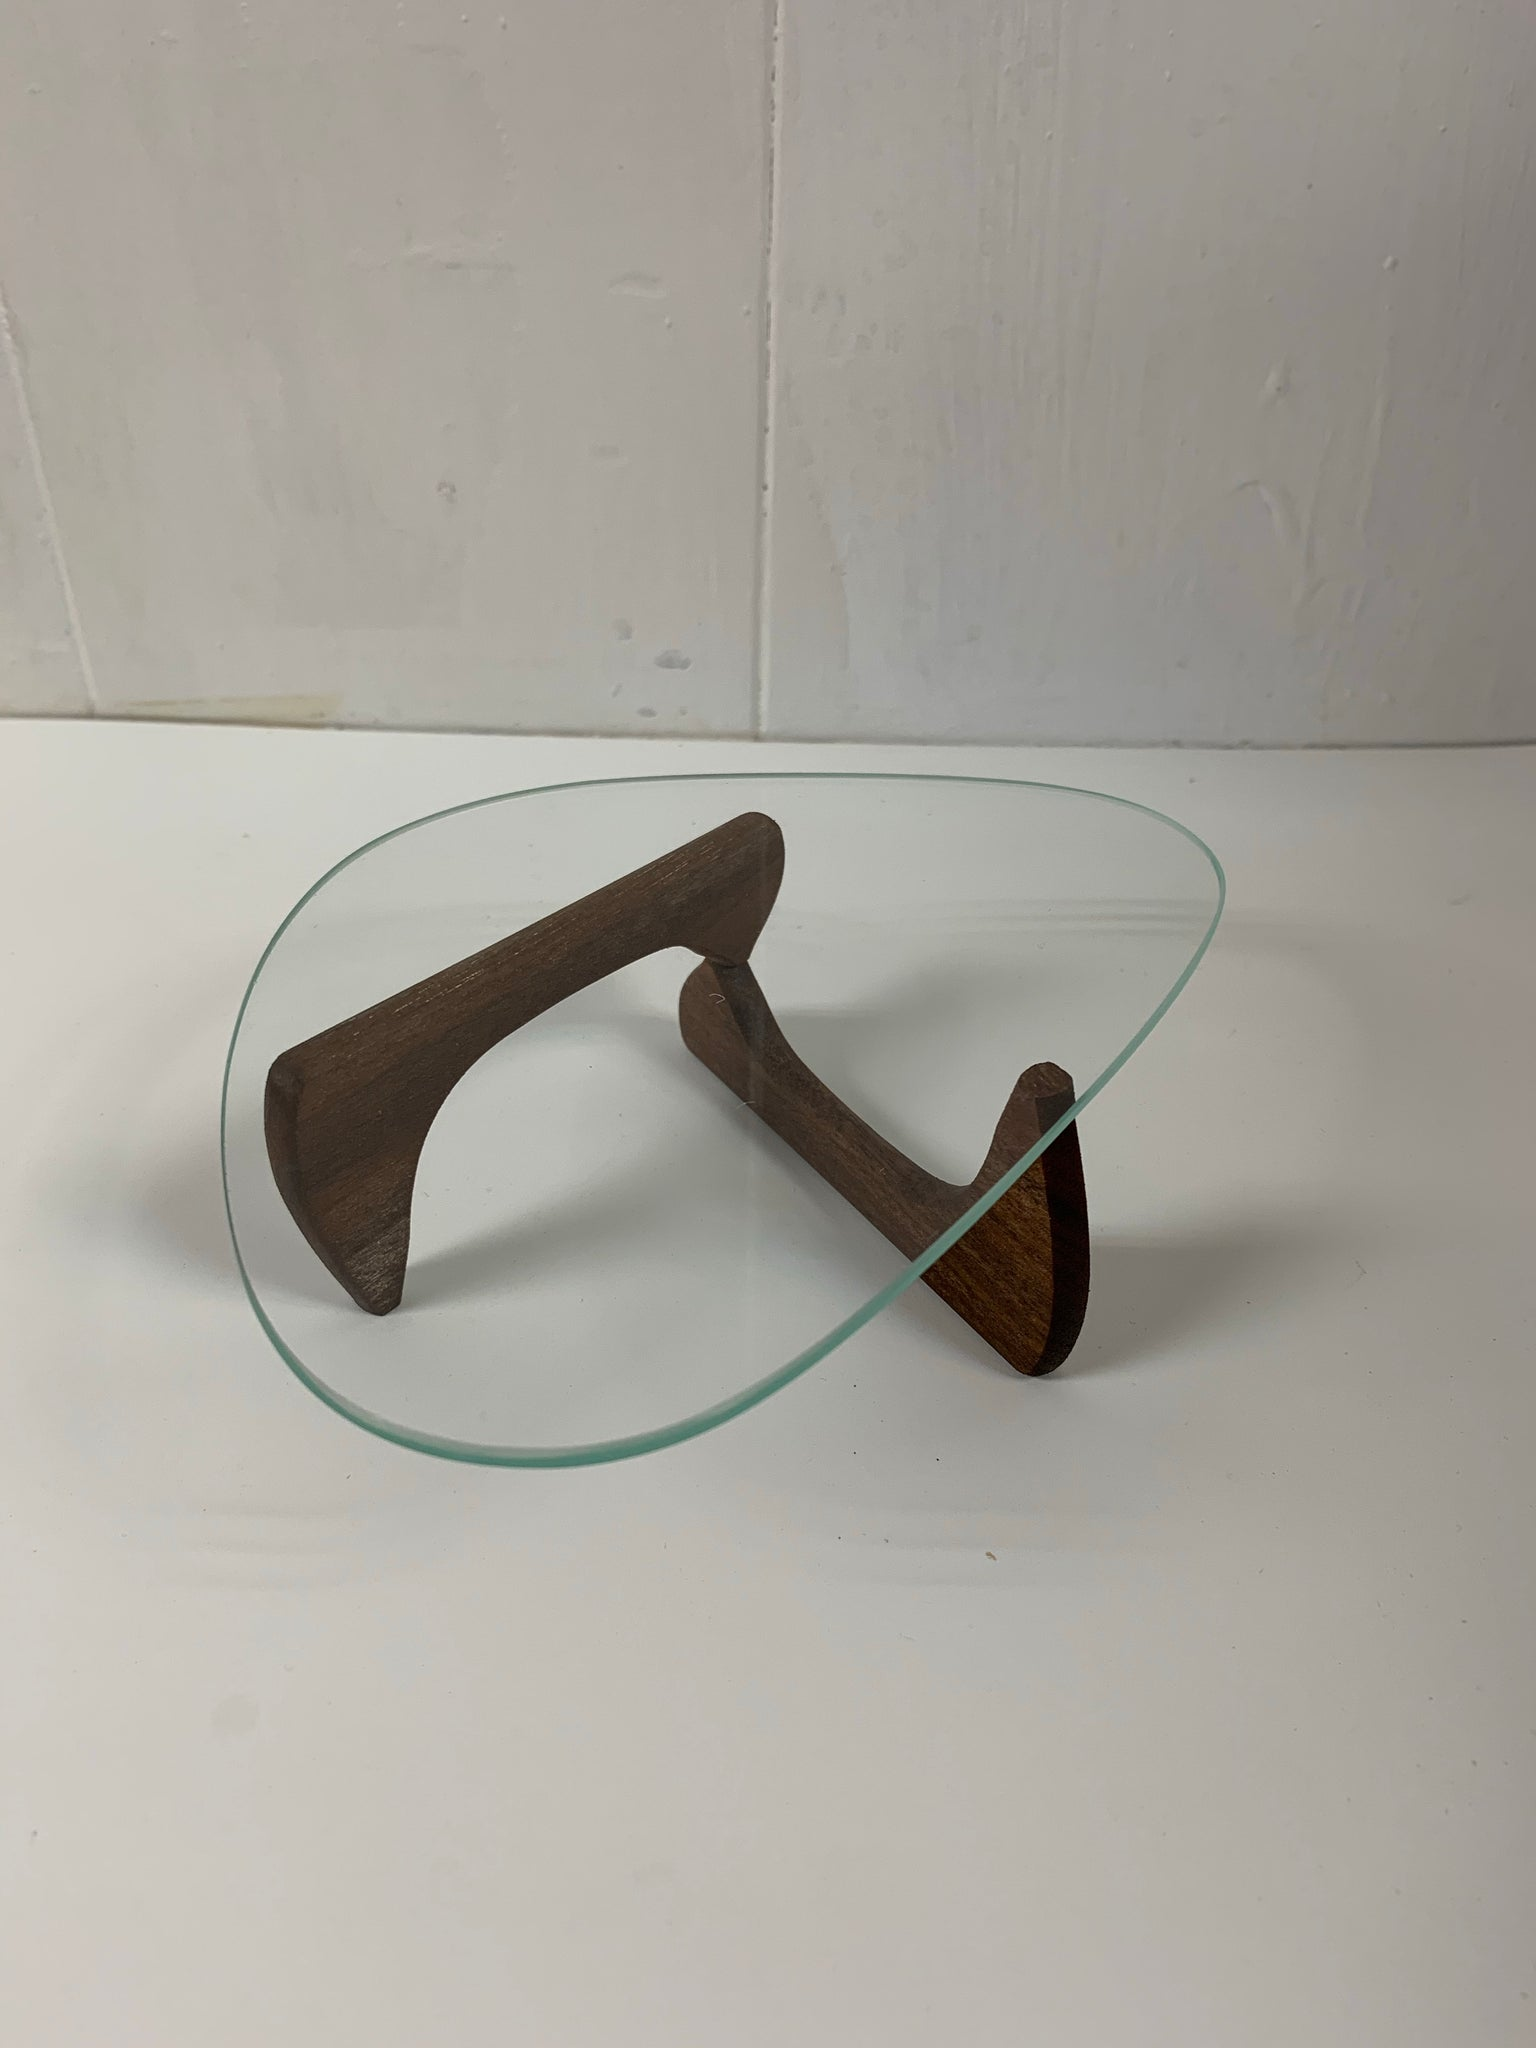 Miniature Toy Herman Miller Table